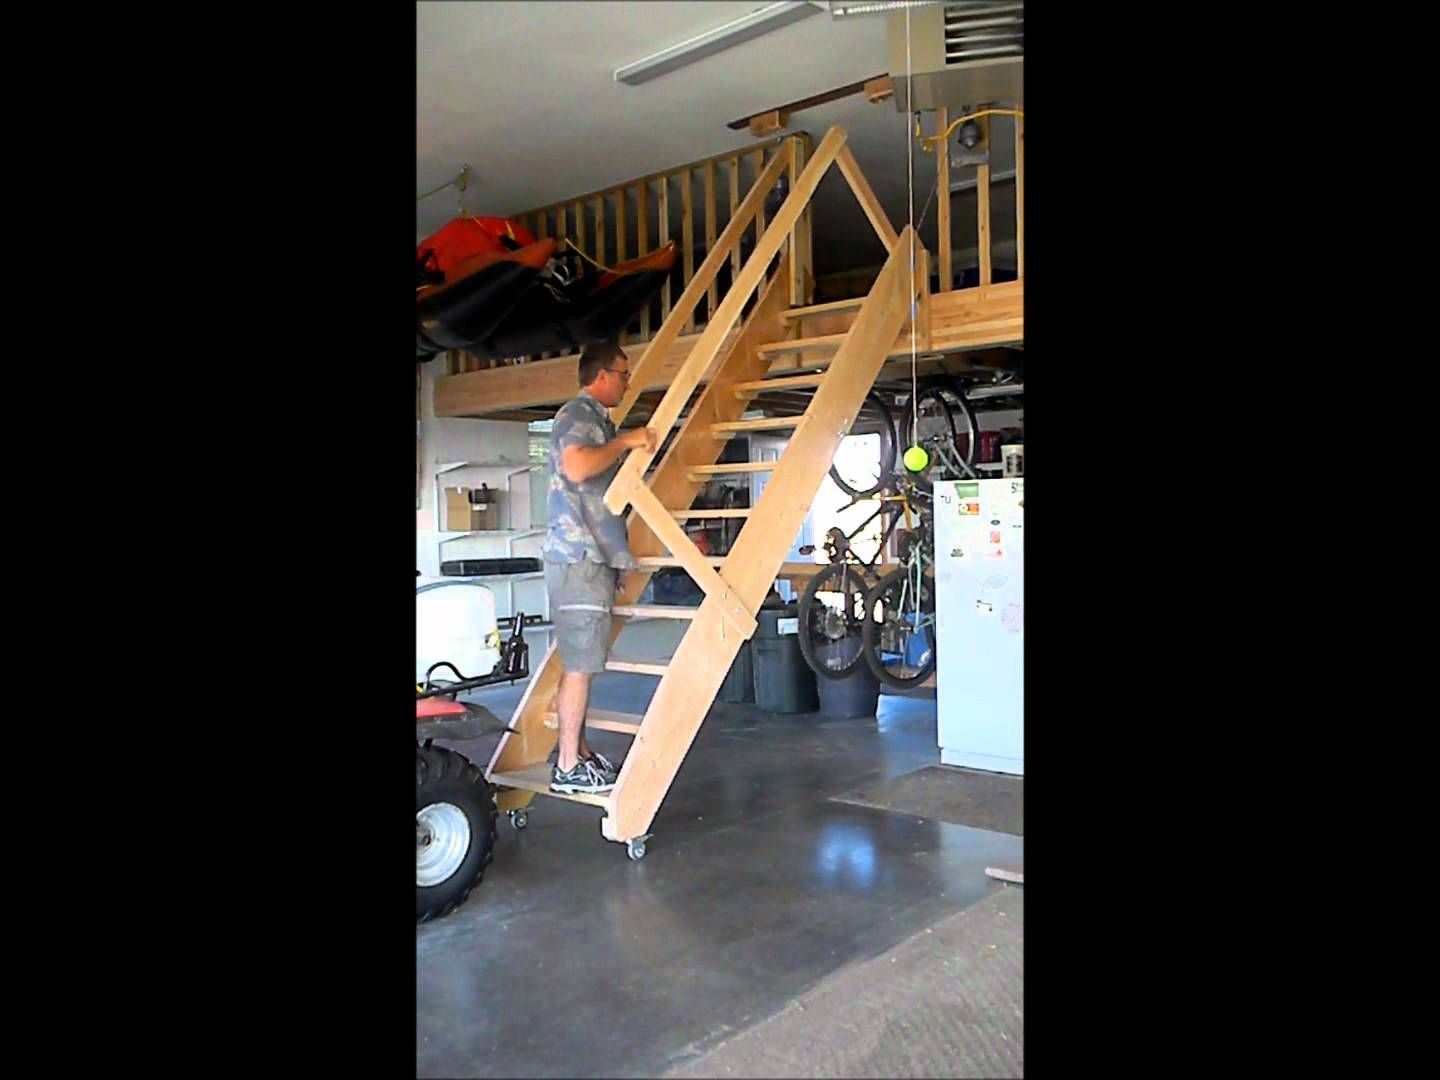 Drop Down Ladders For Garage Attics High Resolution Garage Attic Ladder 12 Garage Attic Stairs Pull Down Attic Renovation Attic Stairs Pull Down Attic Rooms